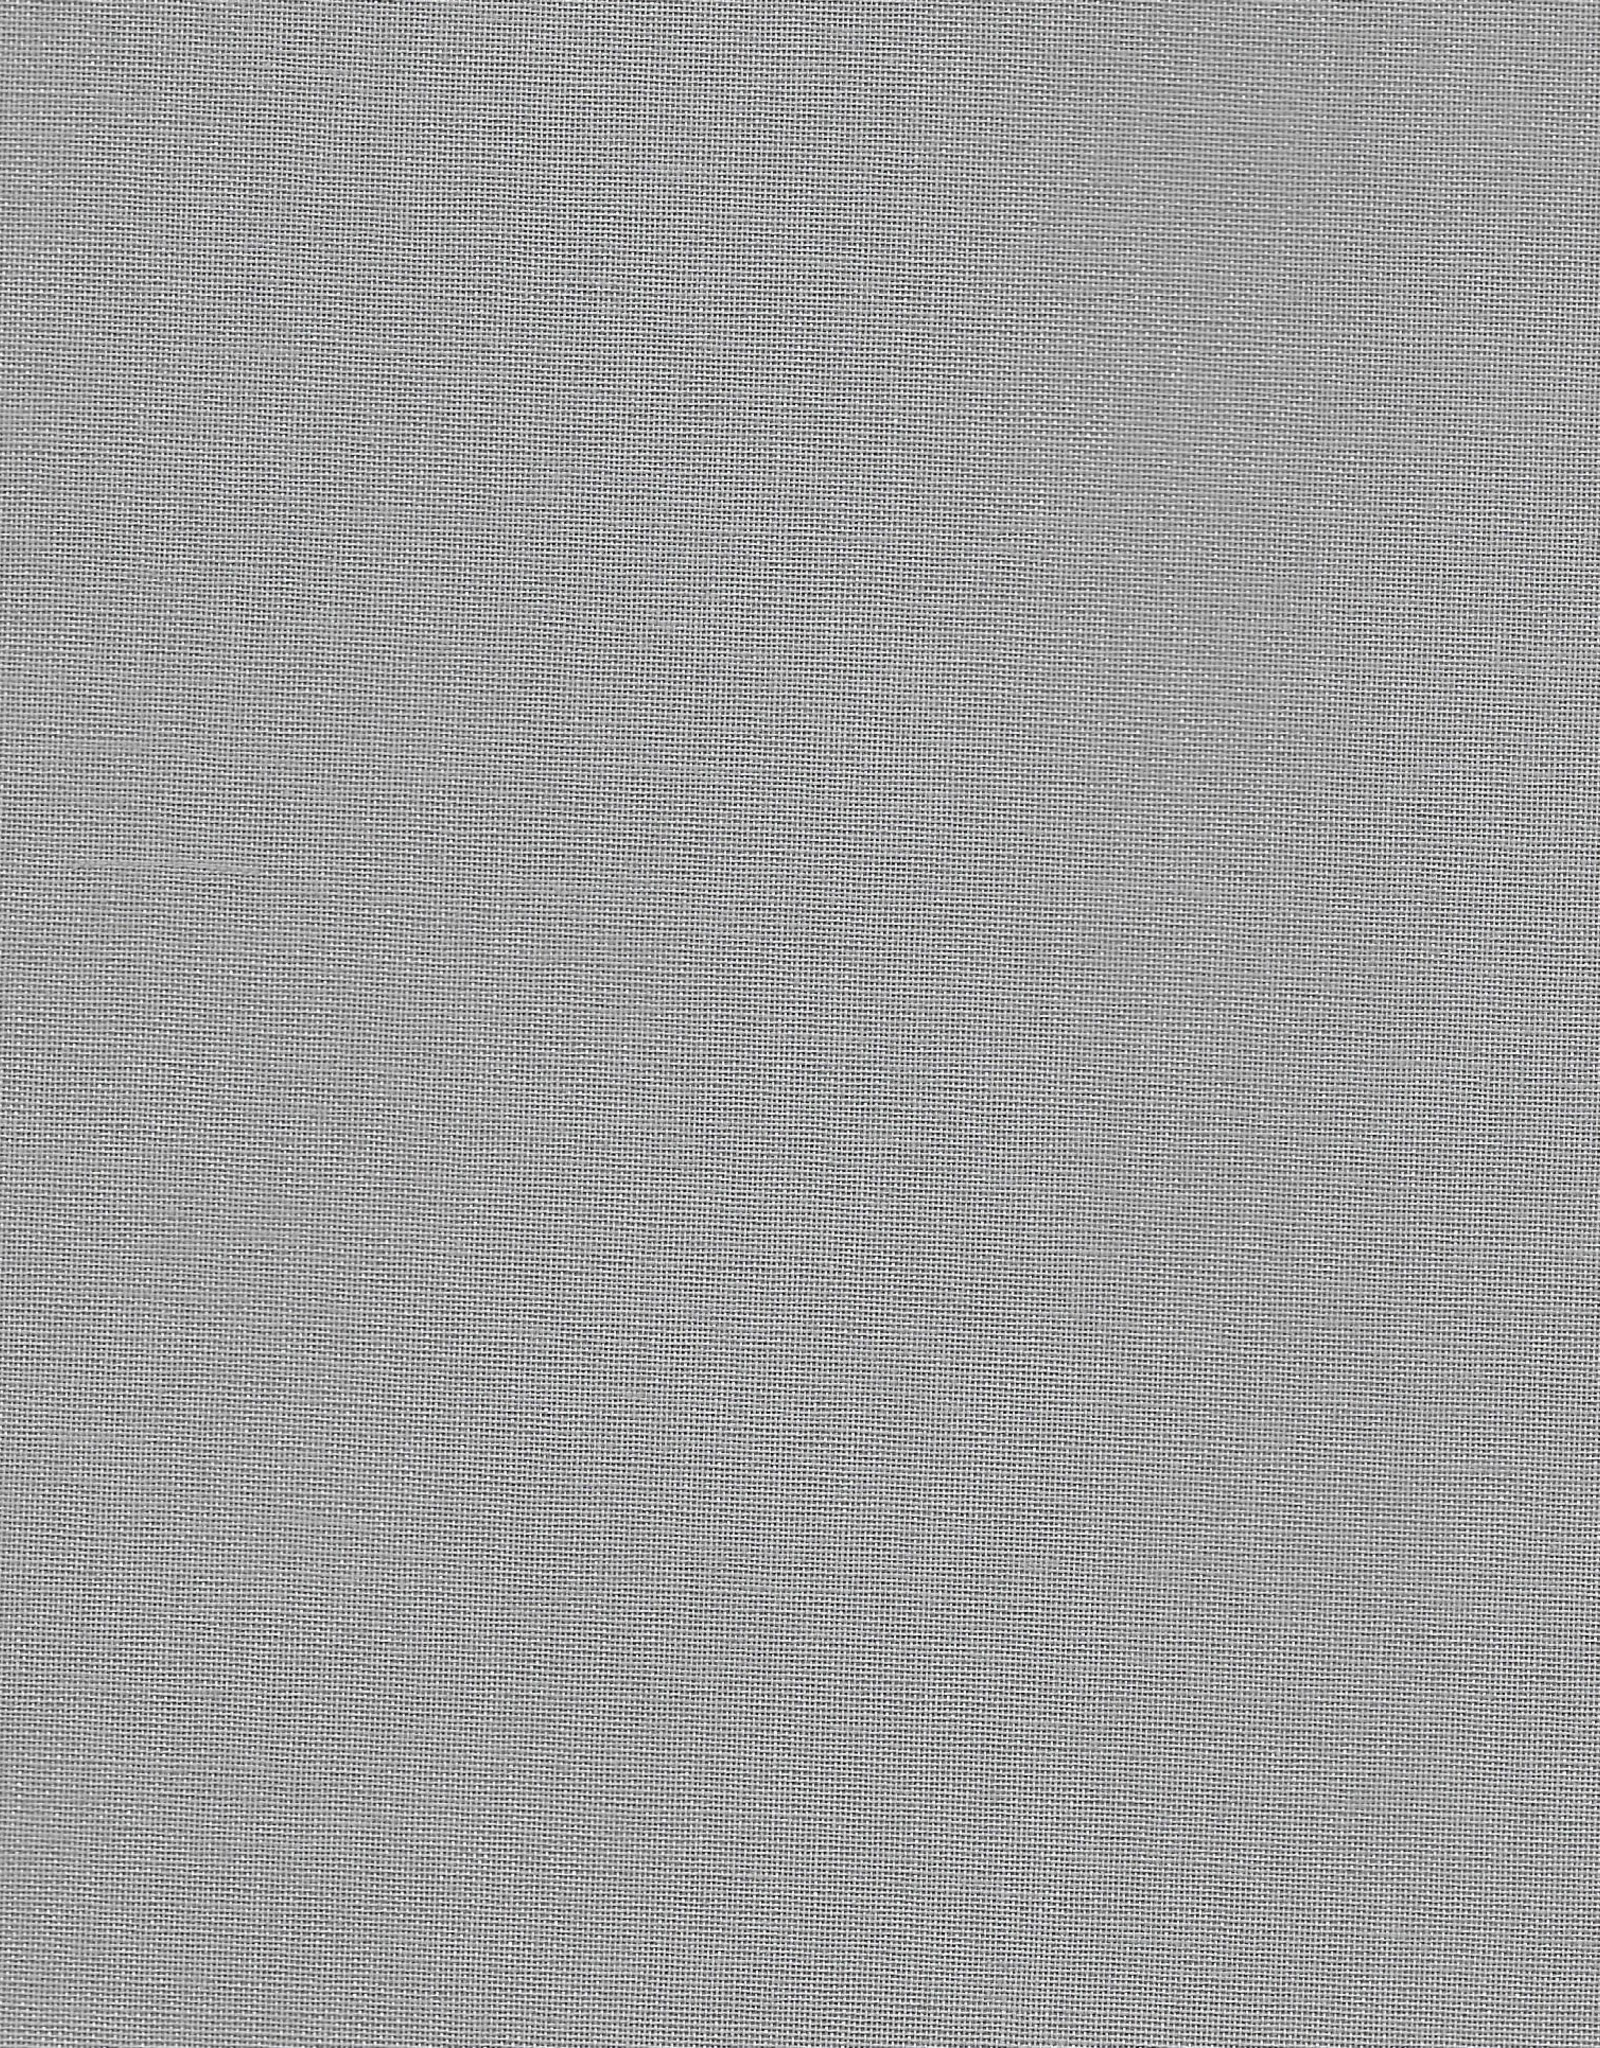 "Book Cloth Light Gray, 17"" x 38"", 1 sheet, Acid-Free, 100% Rayon, Paper Backed"